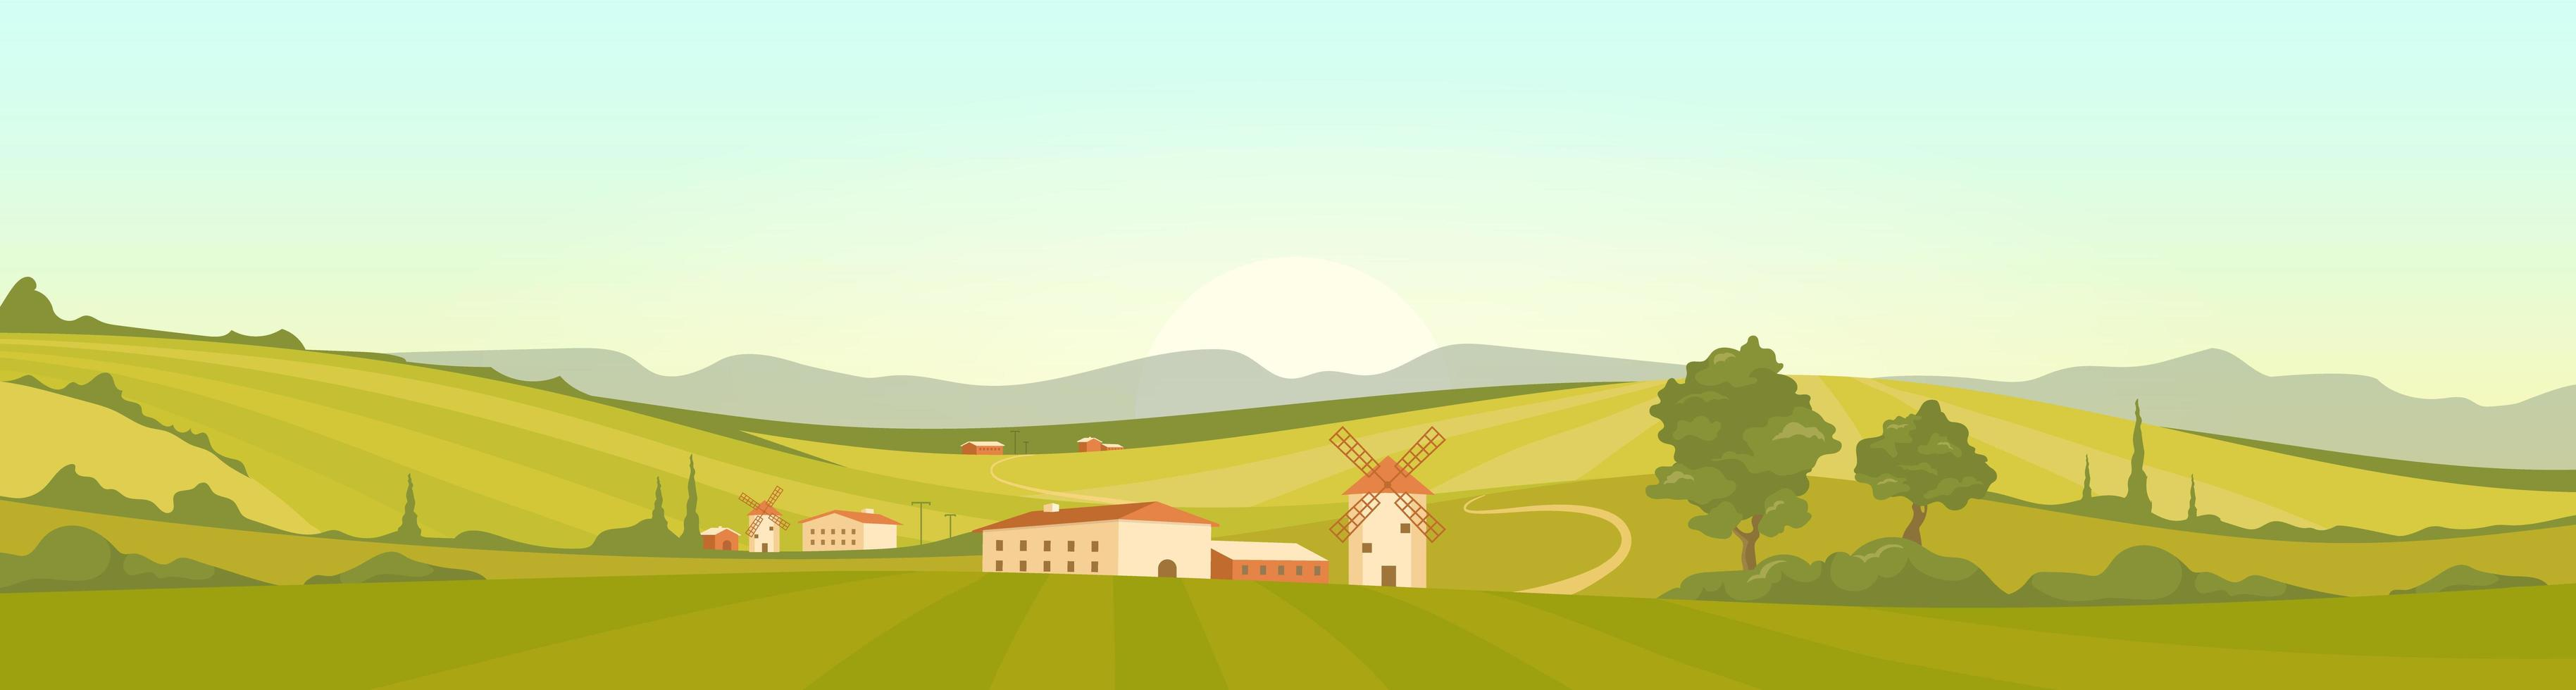 Morning in Tuscany vector